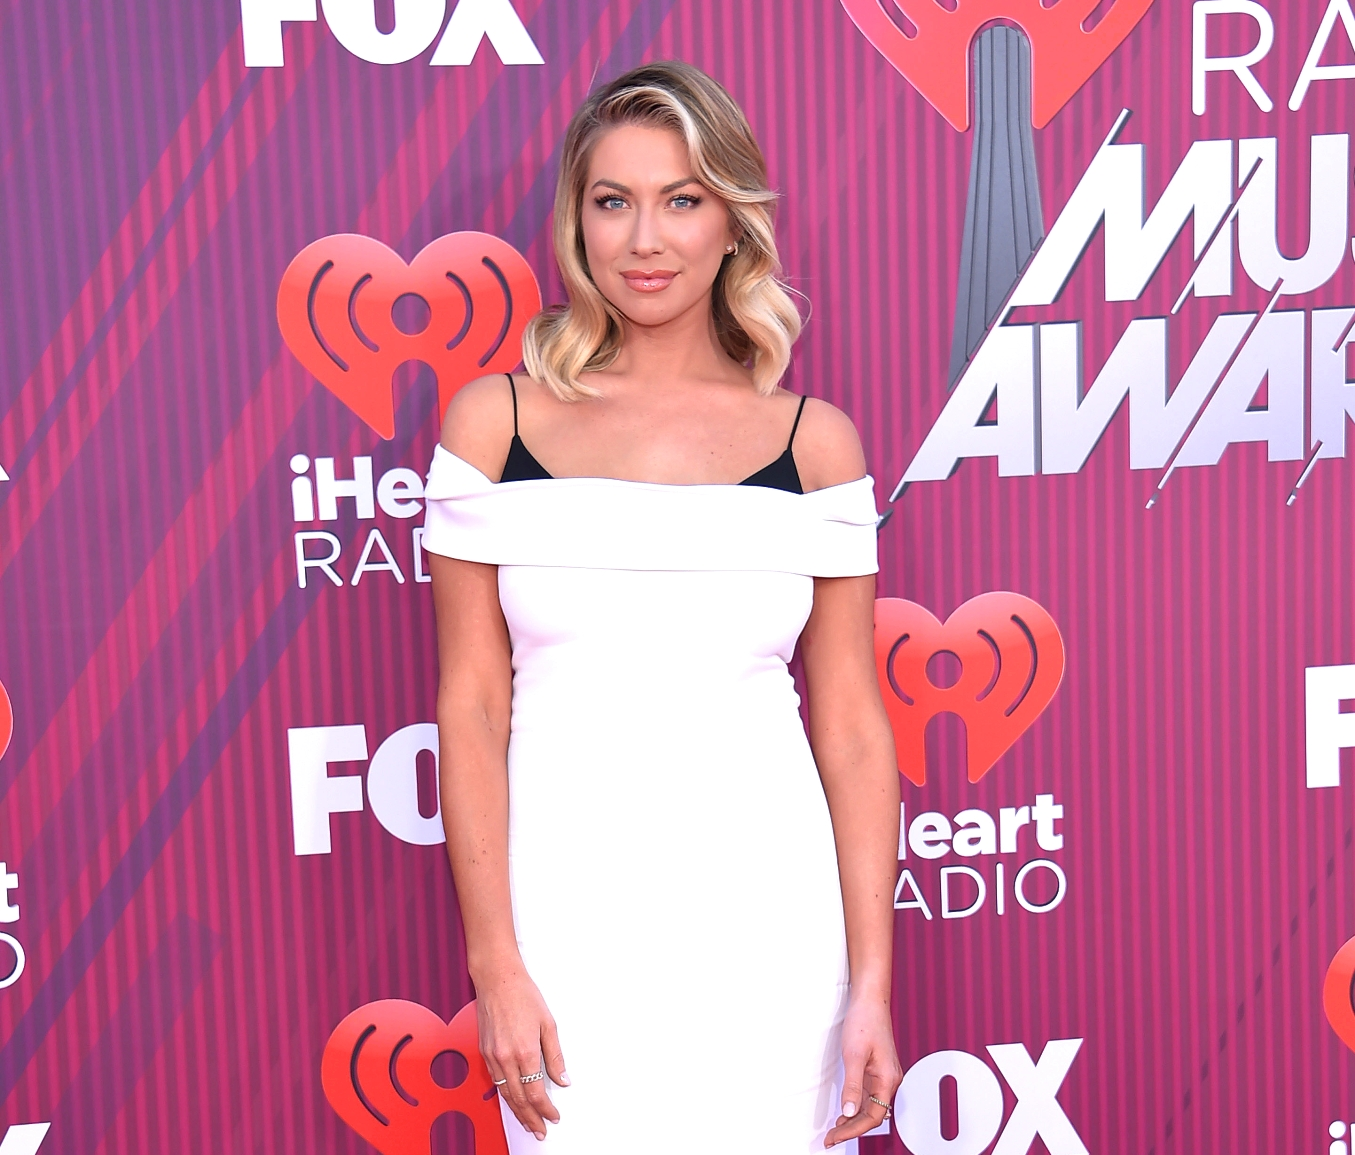 Stassi Schroeder Gives an Update on Italy Wedding Amid Coronavirus Fears, Plus She Talks New $1.7 Mil House and Splitting Vanderpump Rules Into Two Shows